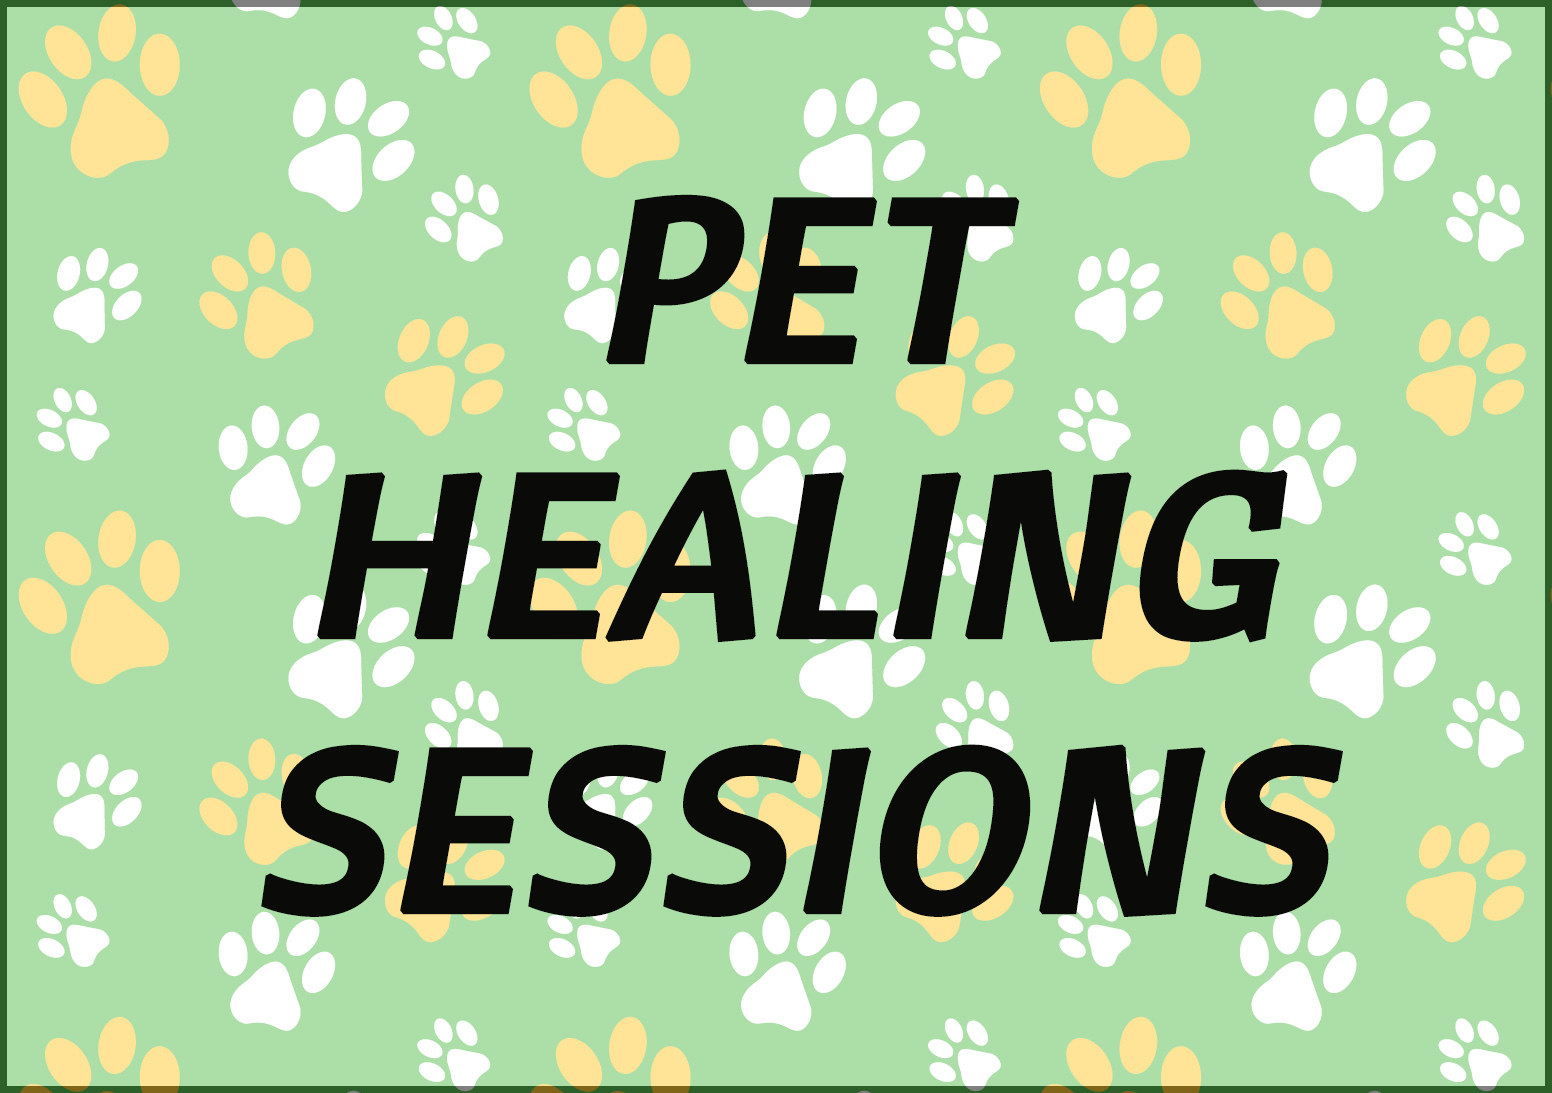 pet-healing-sessions-2016